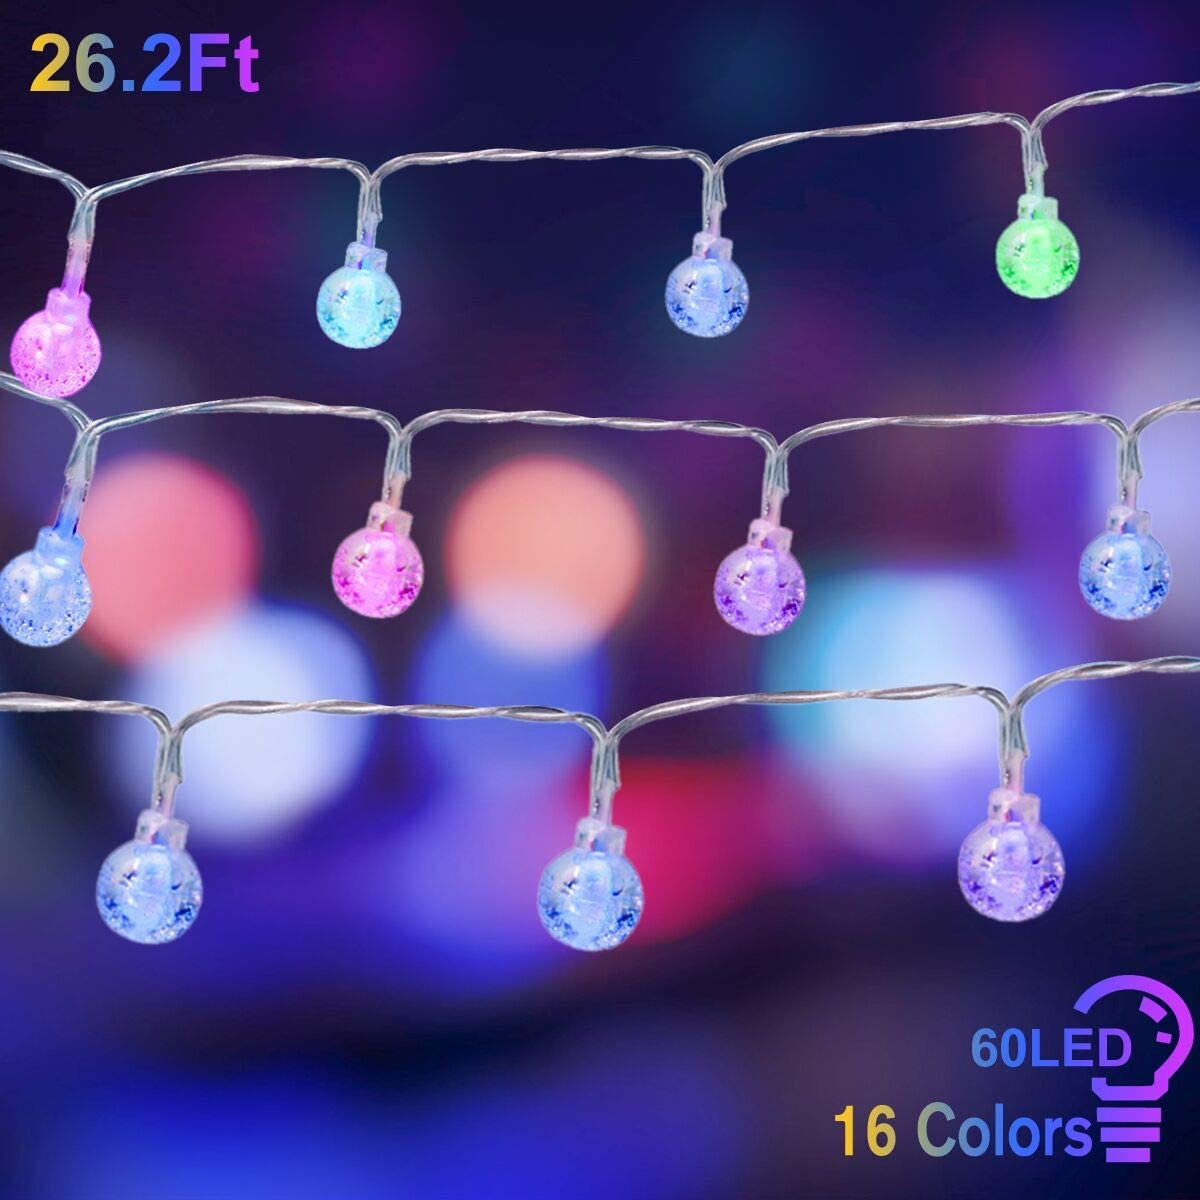 Cosumina Indoor String Light Battery Powered Twinkle Lights with Remote for Bedroom Wedding Garden Party Decorative Lighting Christmas Light Holiday Decoration 26.2Ft